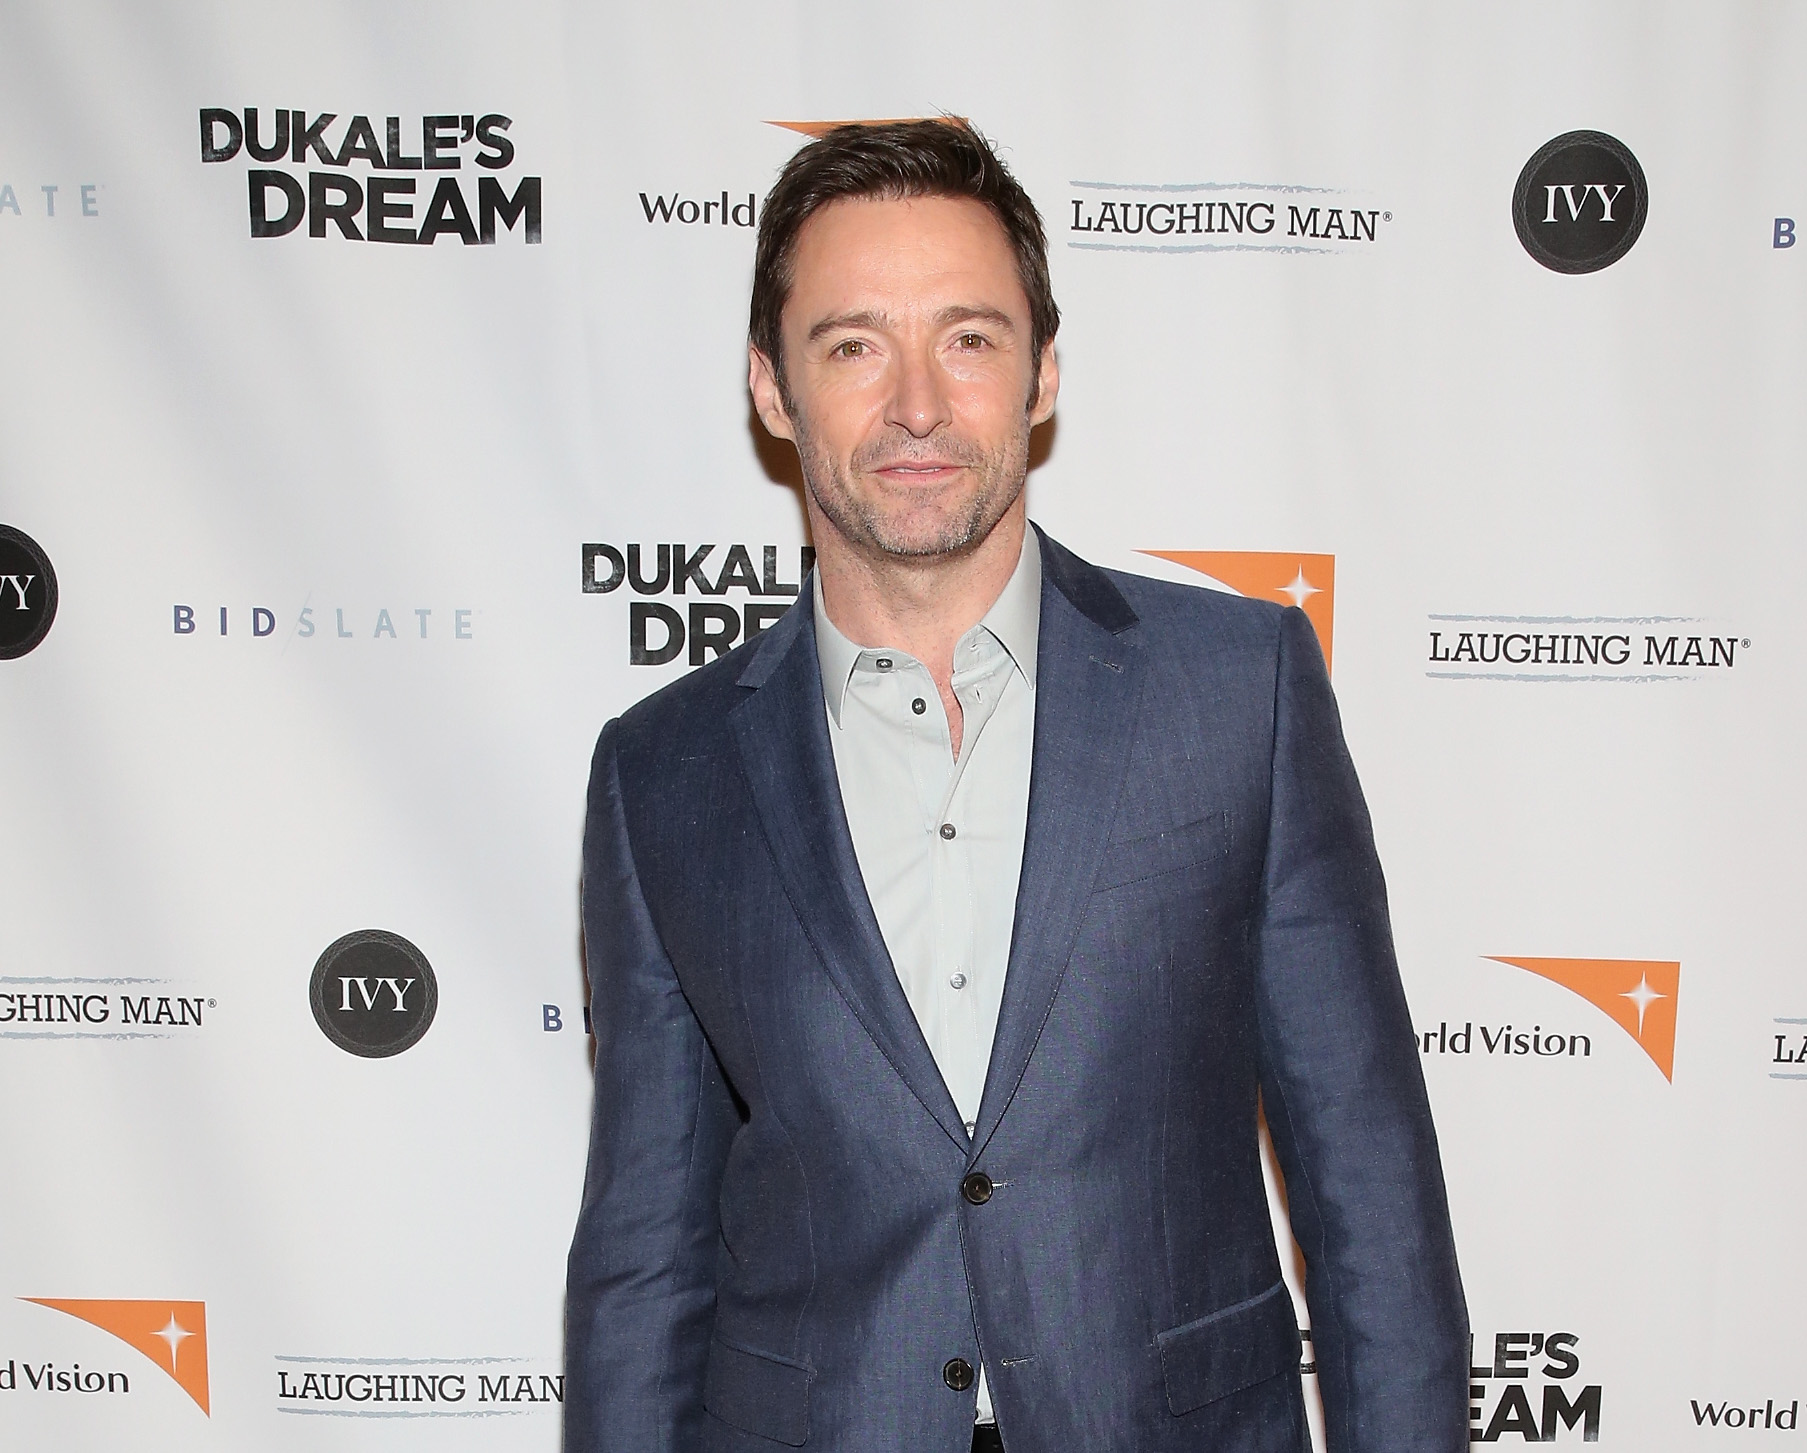 NEW YORK, NY - JUNE 04:  Actor Hugh Jackman attends the premiere of Dukale's Dream on June 4, 2015 in New York City.  (Photo by Robin Marchant/Getty Images for The 7th Floor)